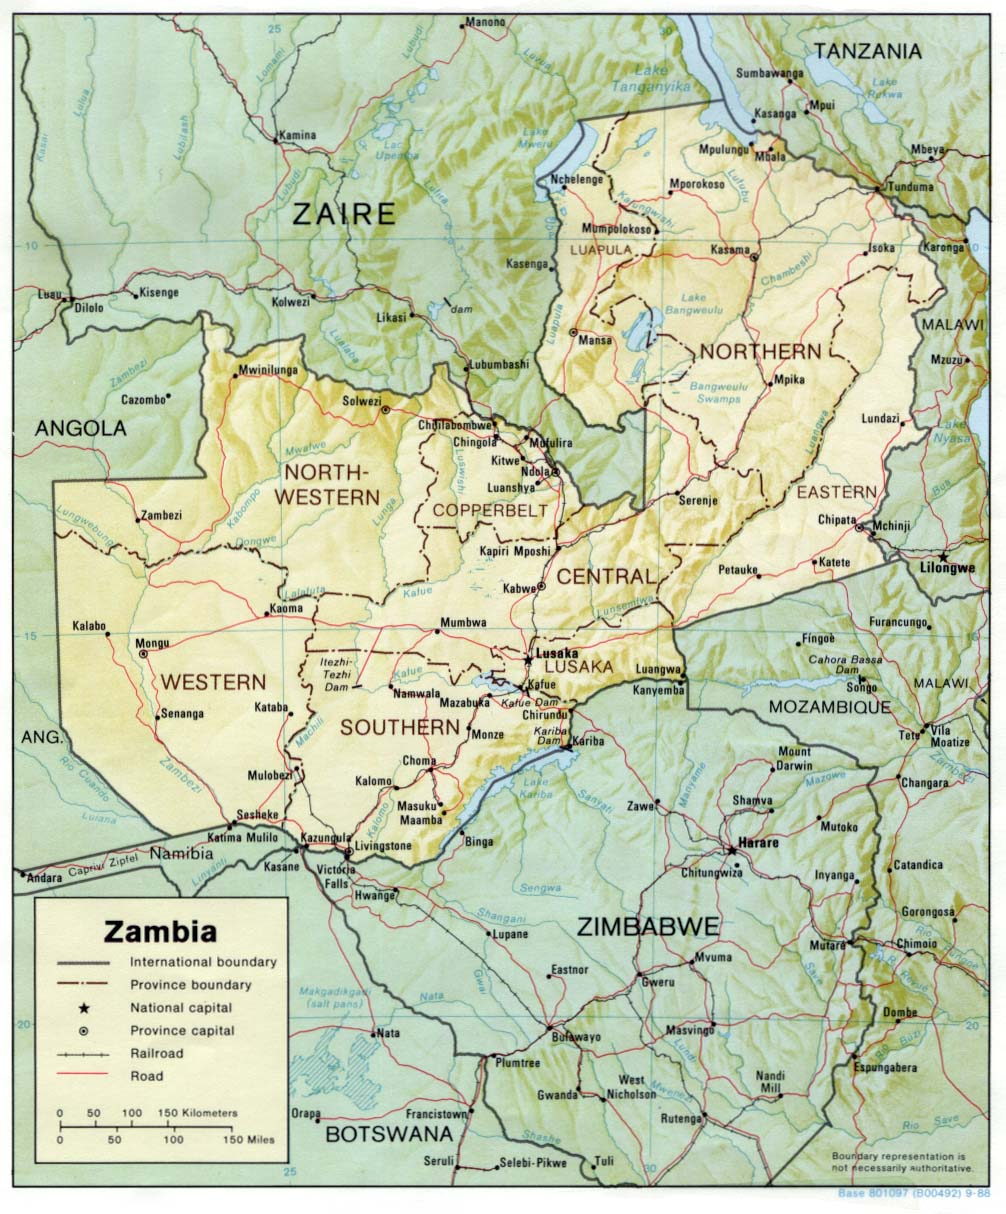 Download free zambia maps gumiabroncs Gallery